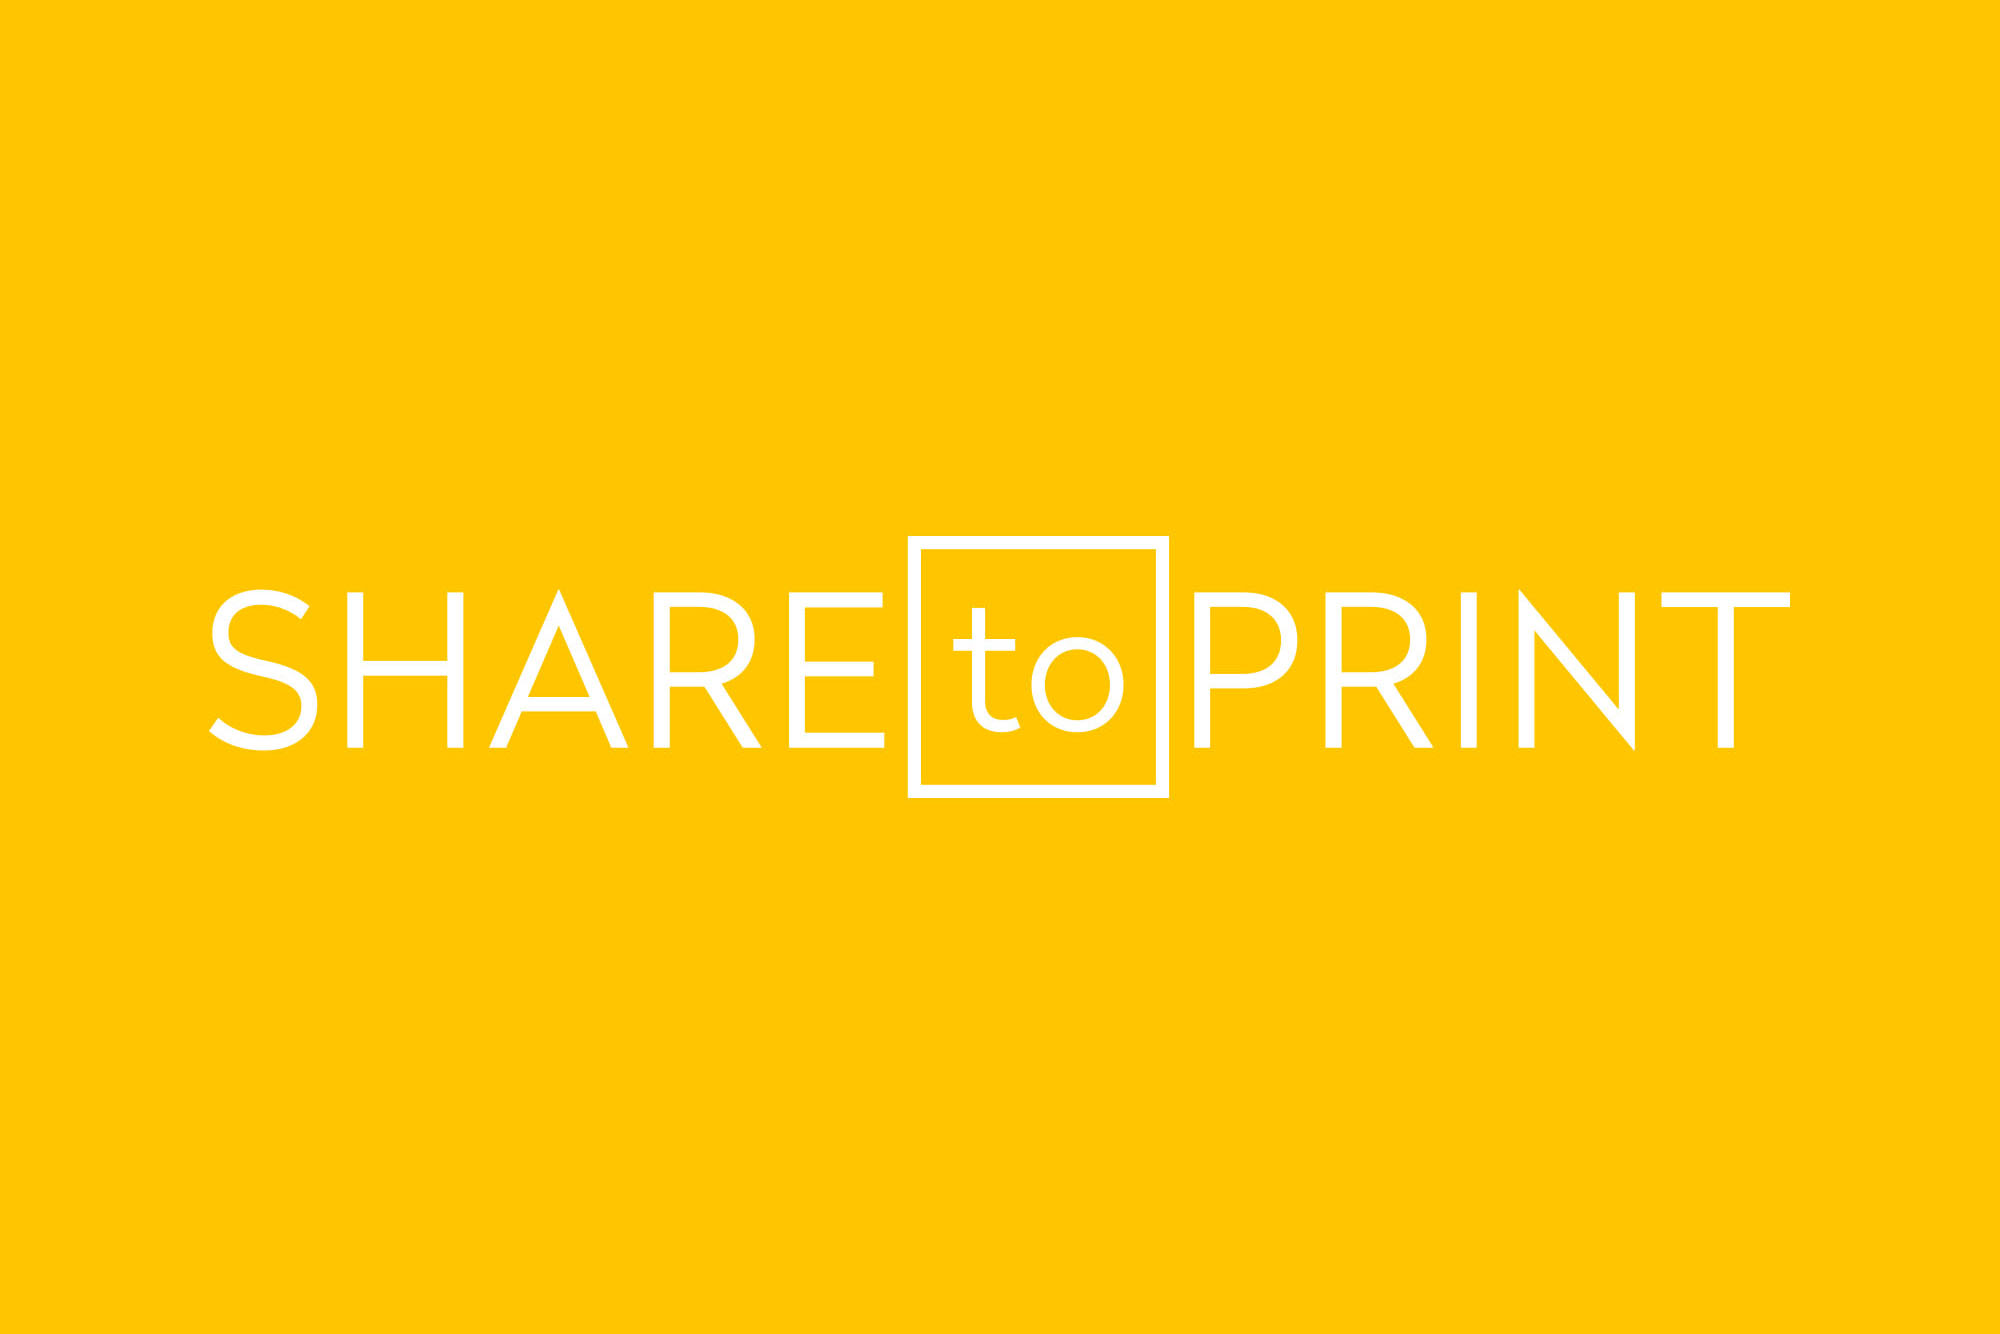 Share-to-Print™